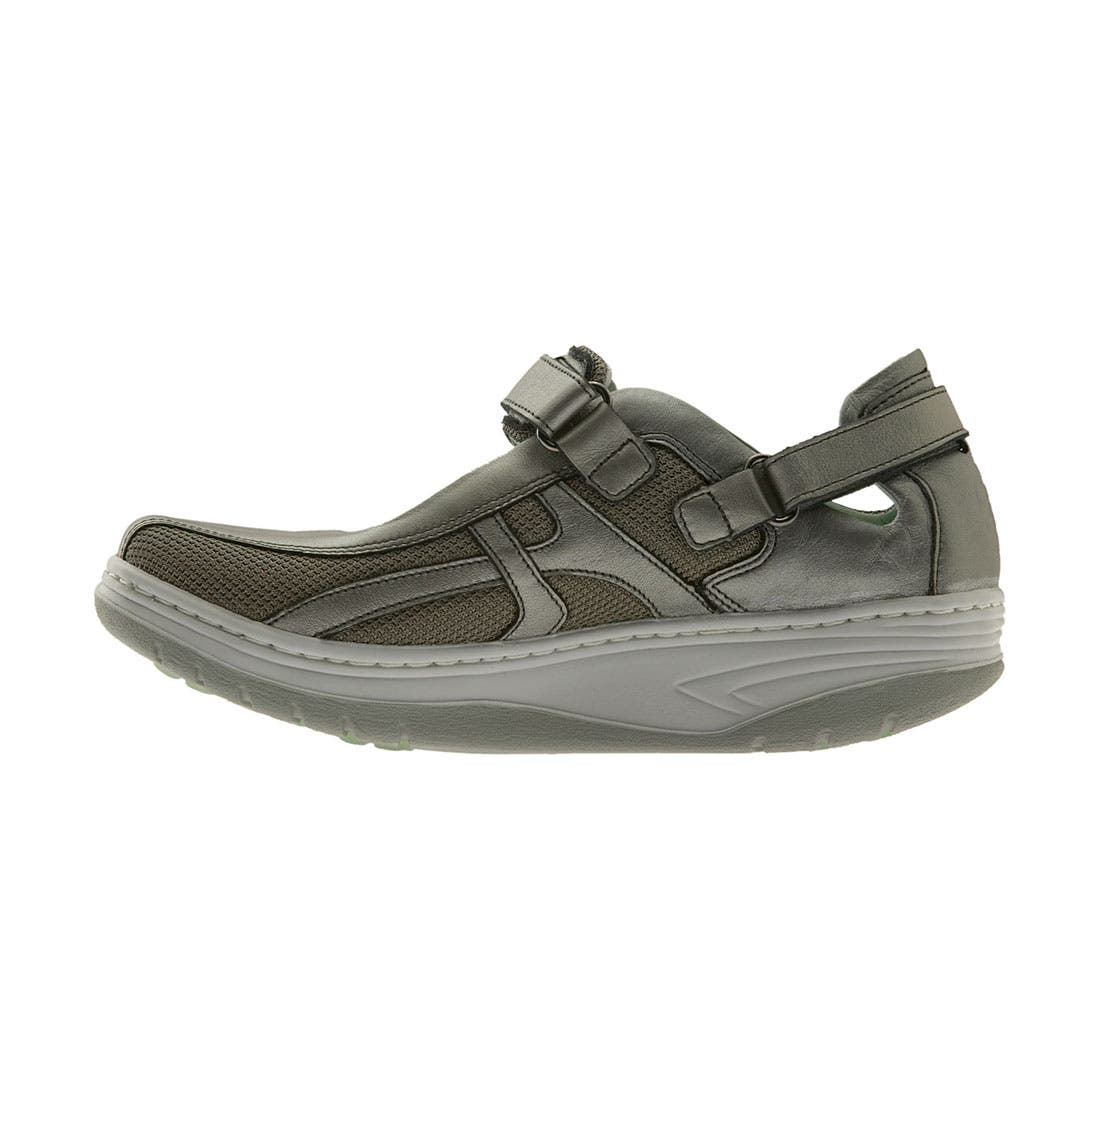 Sano by Mephisto 'Excess' Walking Shoe,                             Alternate thumbnail 20, color,